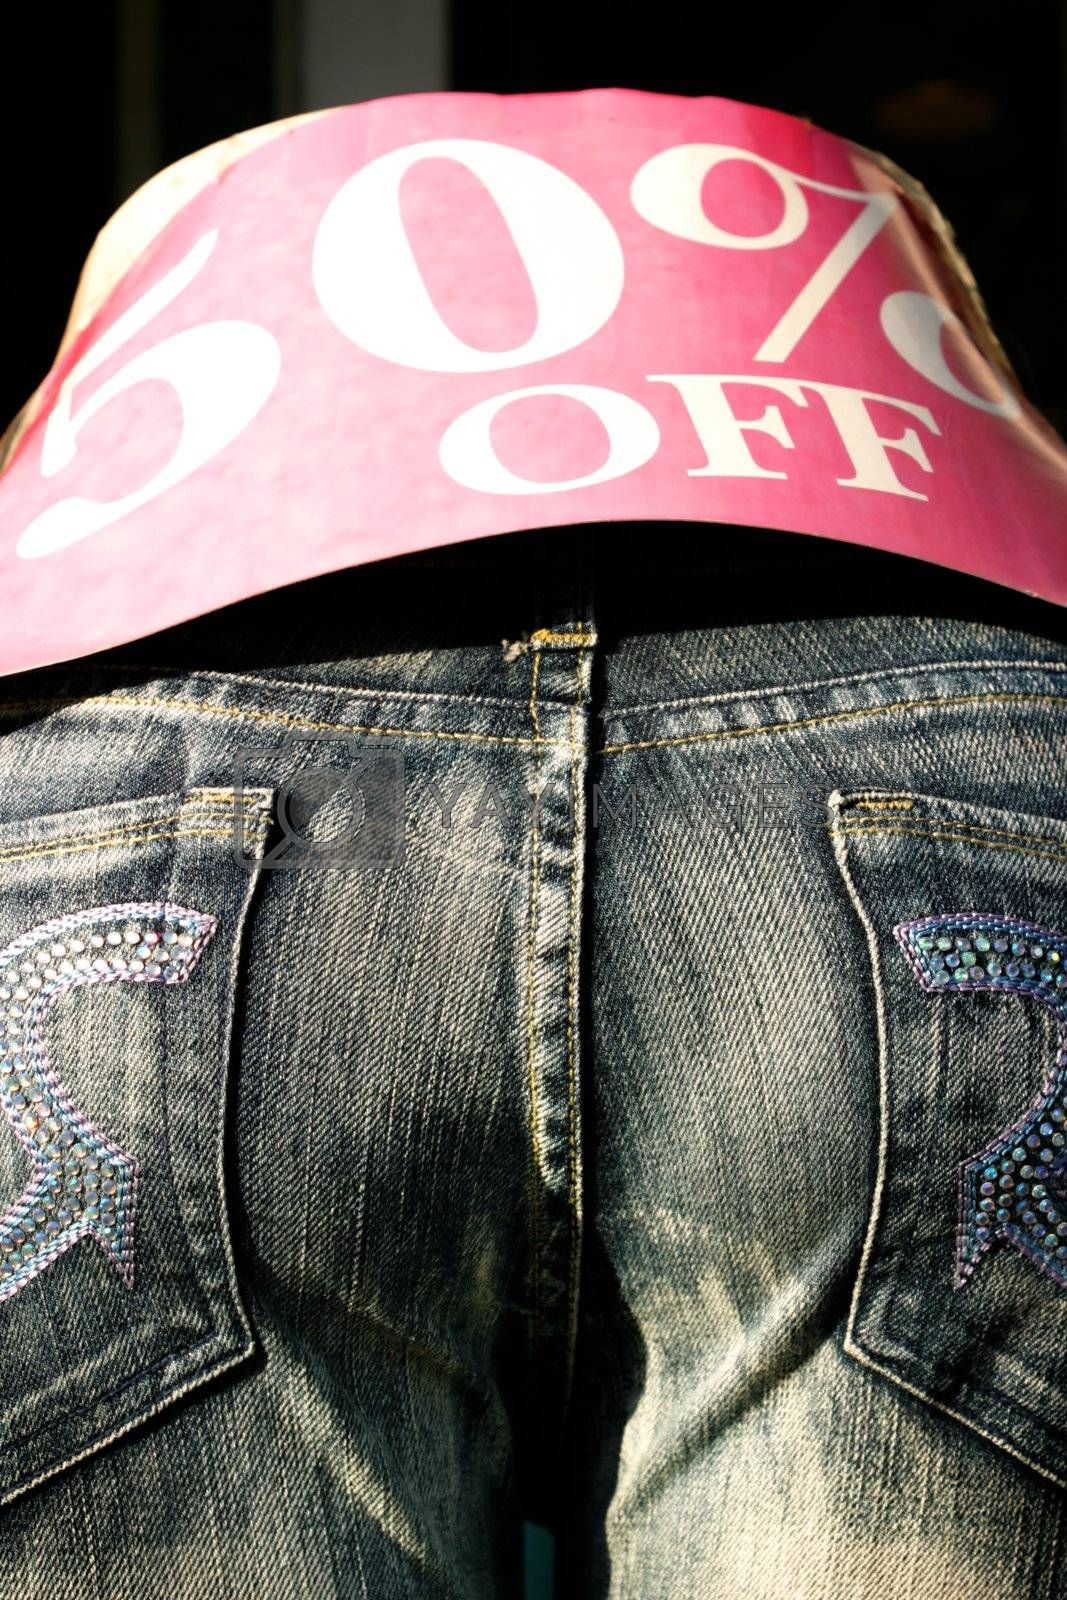 Fifty Percent Off by hlehnerer